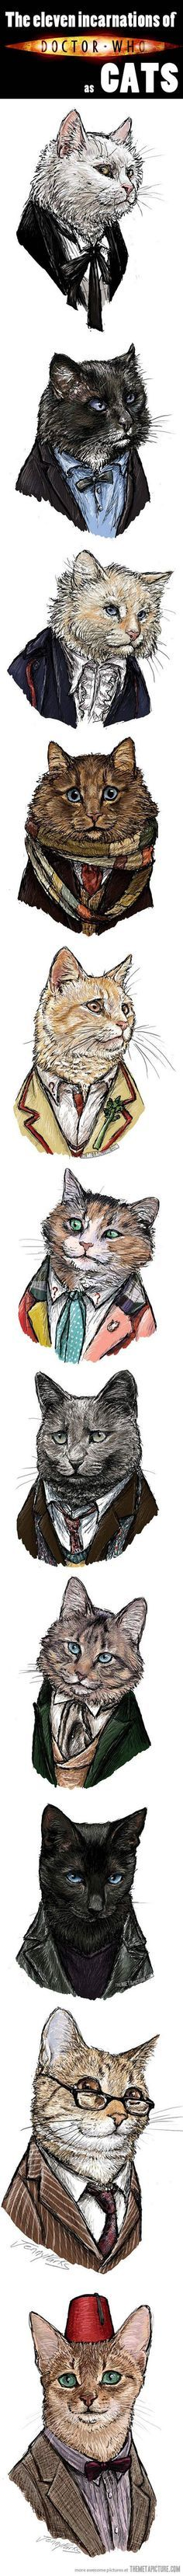 All the incarnations of Doctor Who as cats.  Might help explain why I love Nine so much.  <3